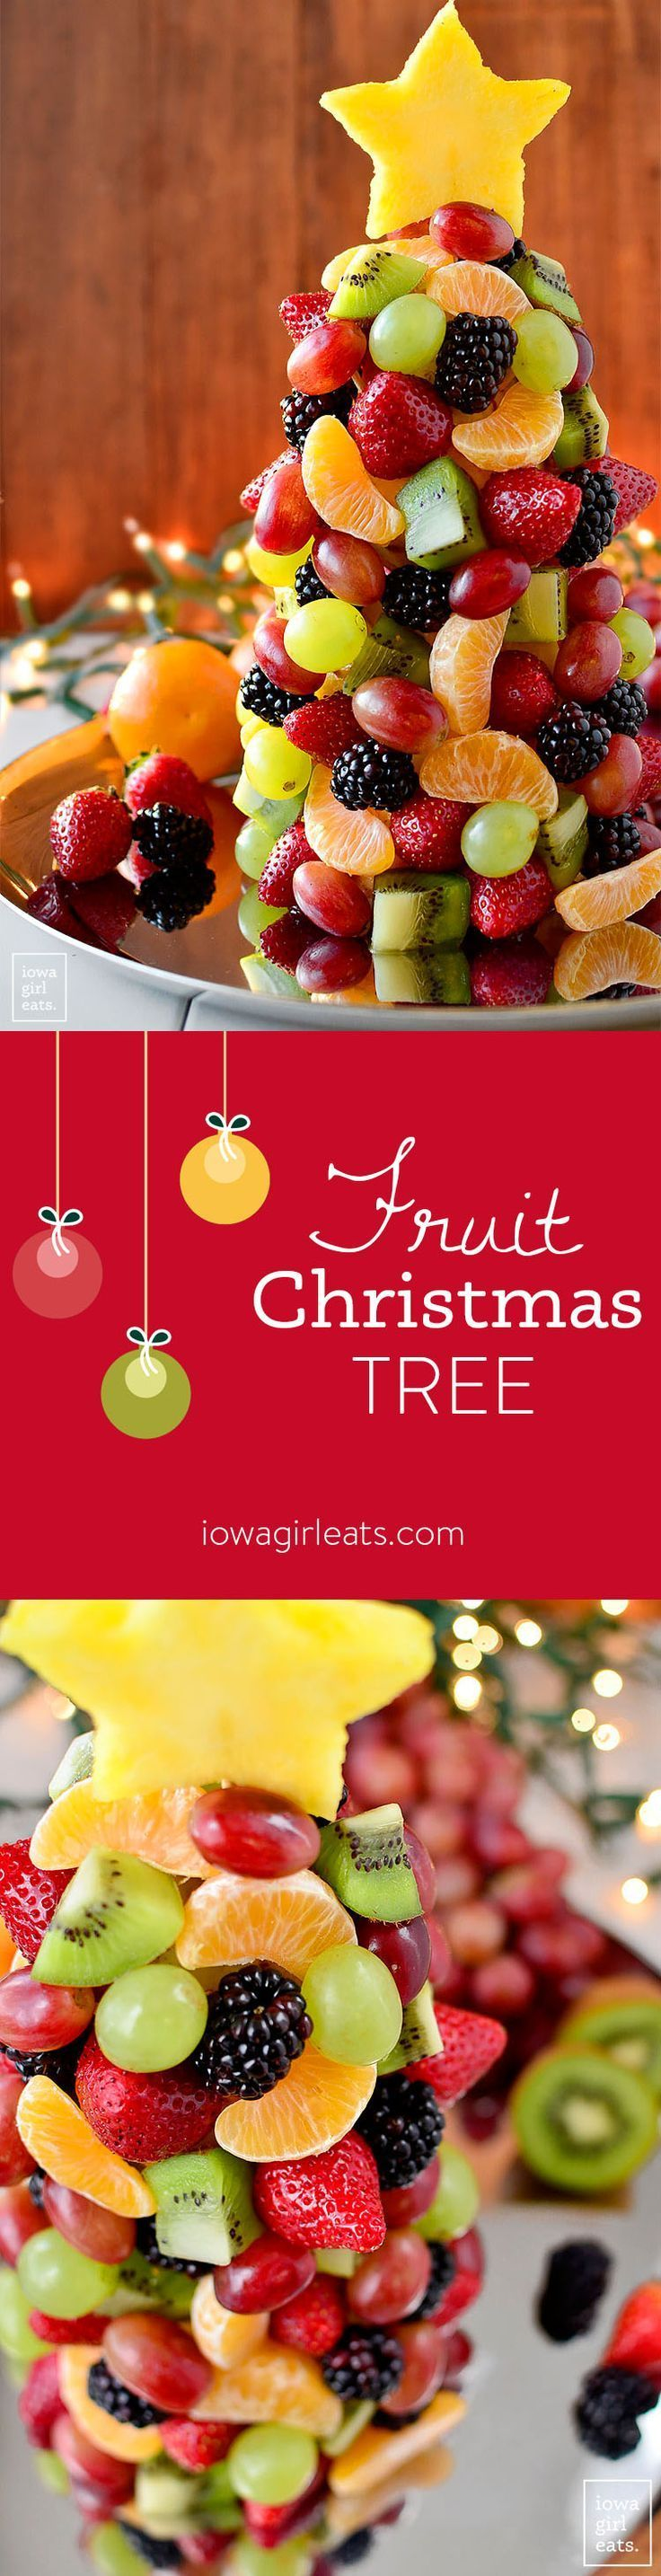 Start a new holiday tradition with a beautiful and fresh Fruit Christmas Tree! Perfect for parties, a dessert table centerpiece, or a healthy treat for Santa. | iowagirleats.com